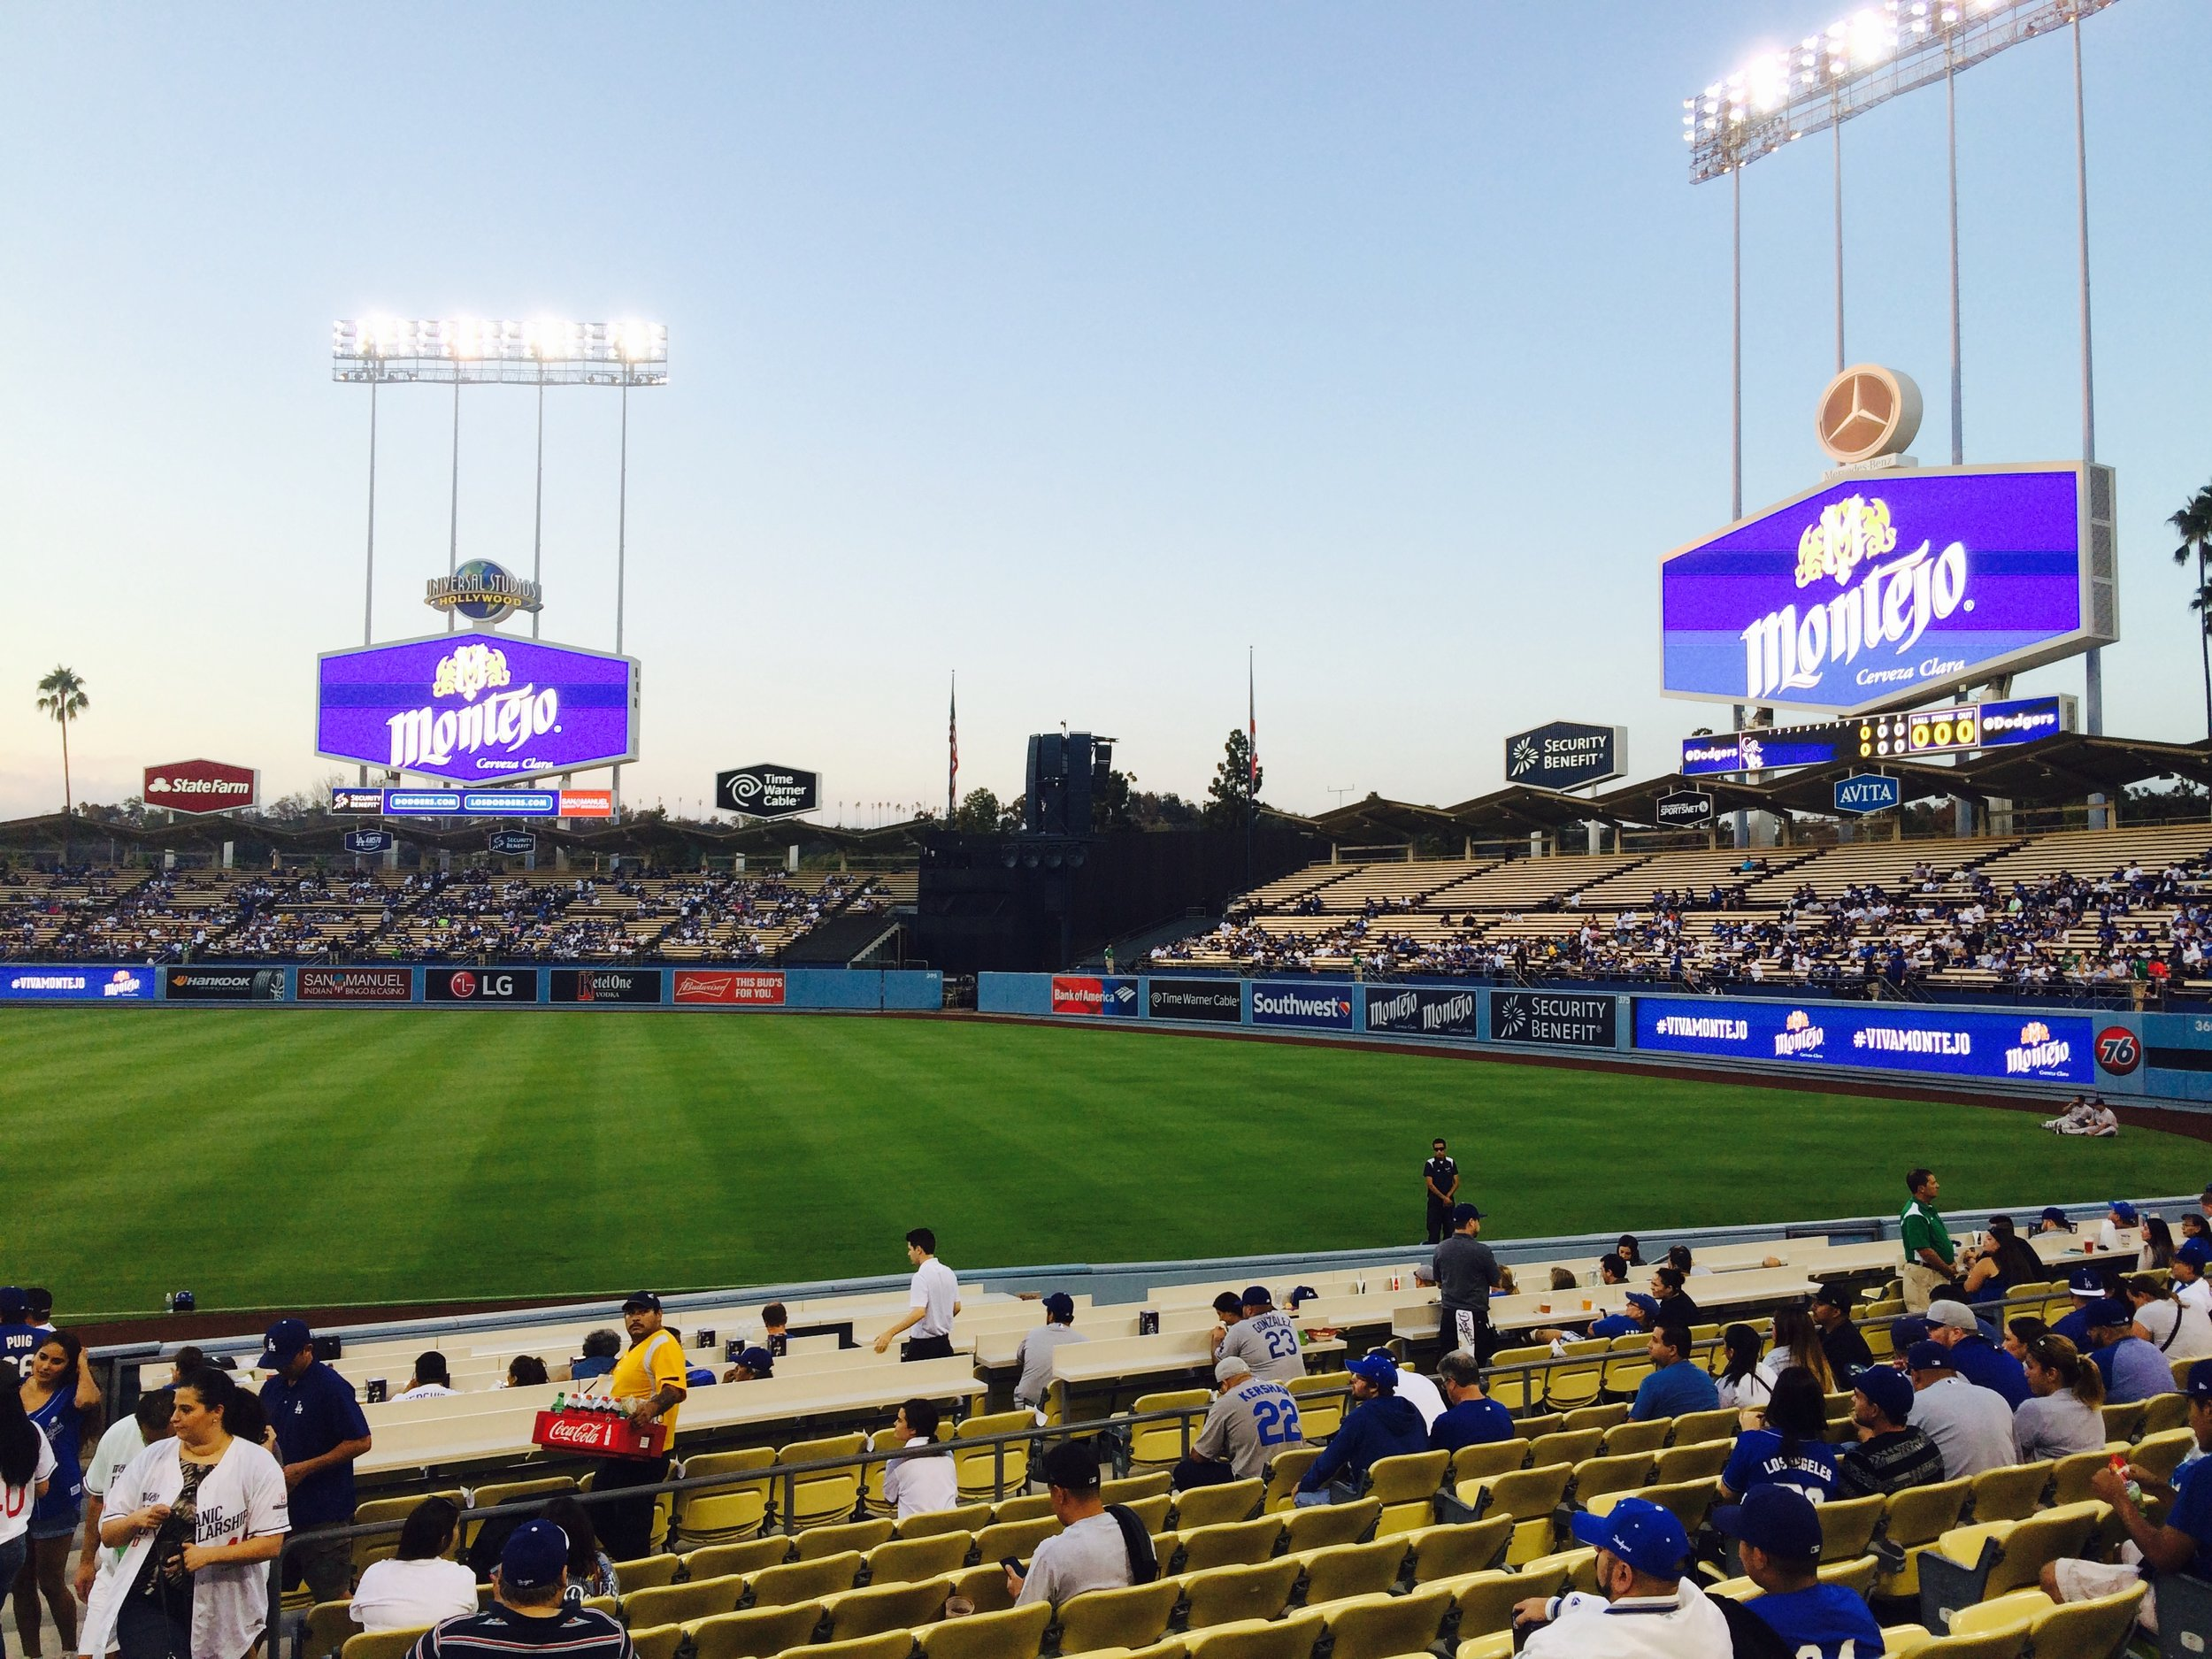 Branding at Dodgers Stadium